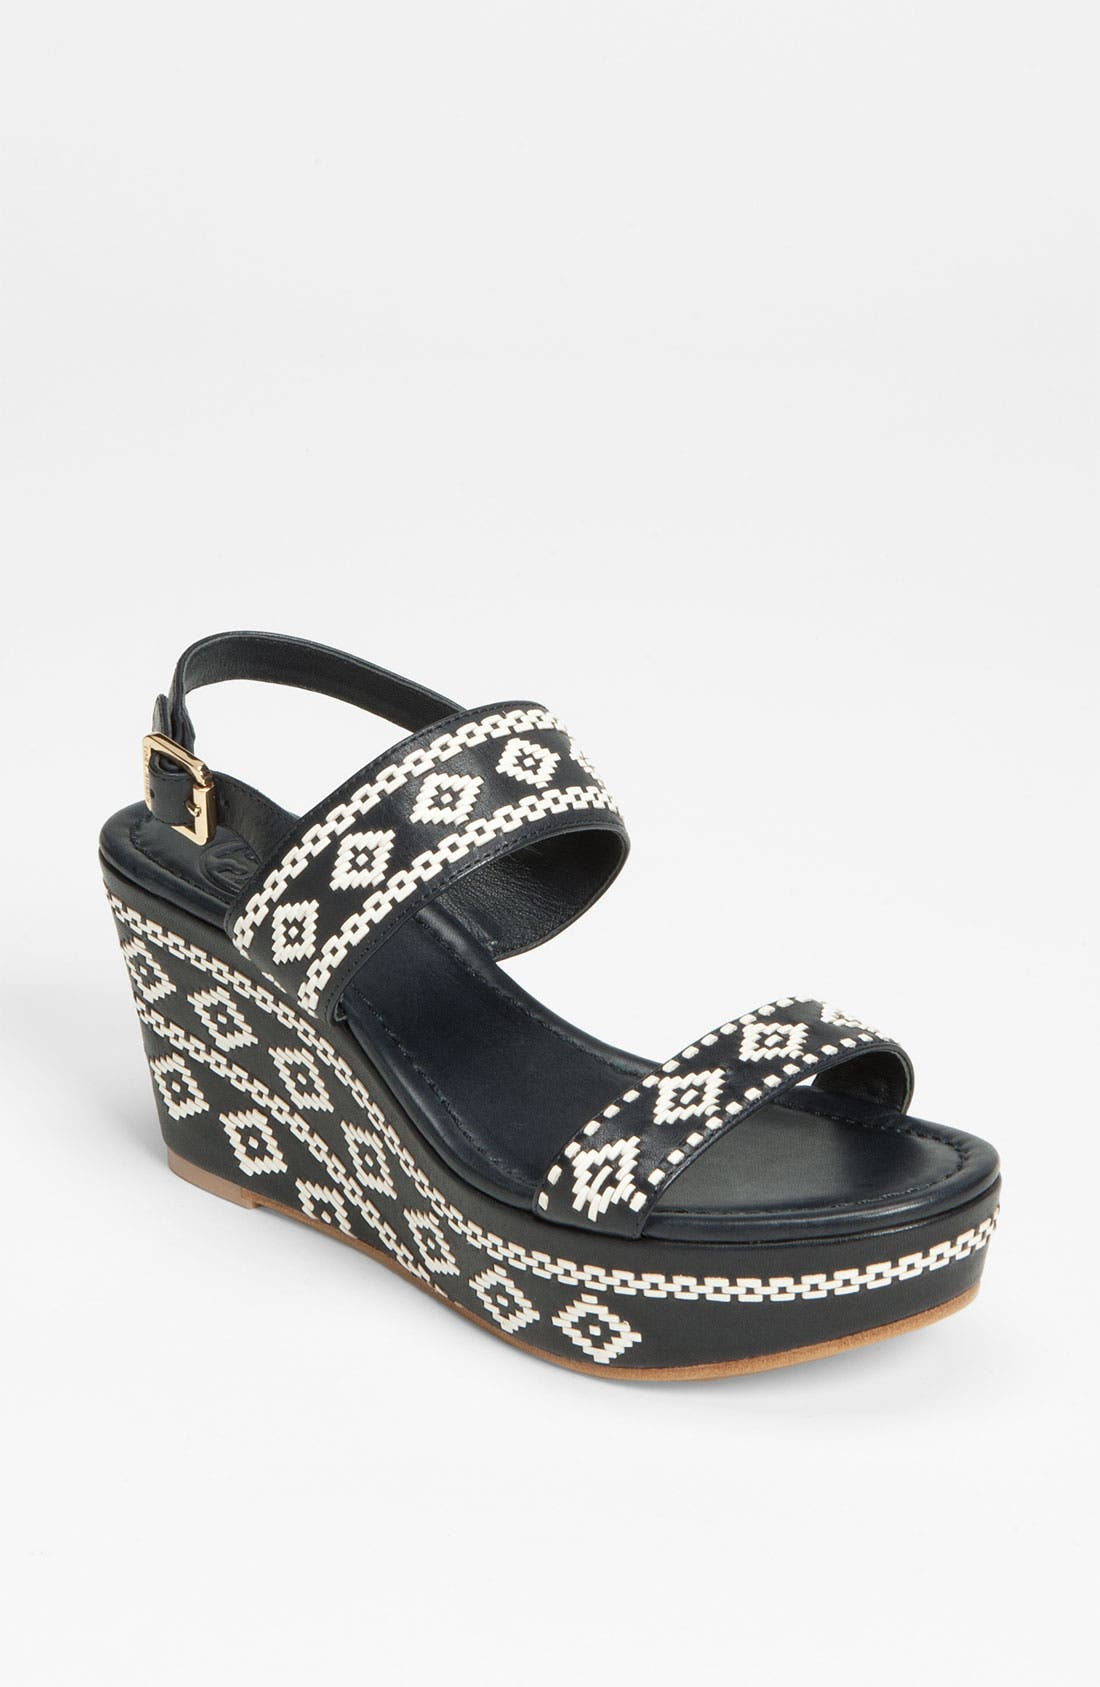 Alternate Image 1 Selected - Tory Burch 'Reena' Sandal